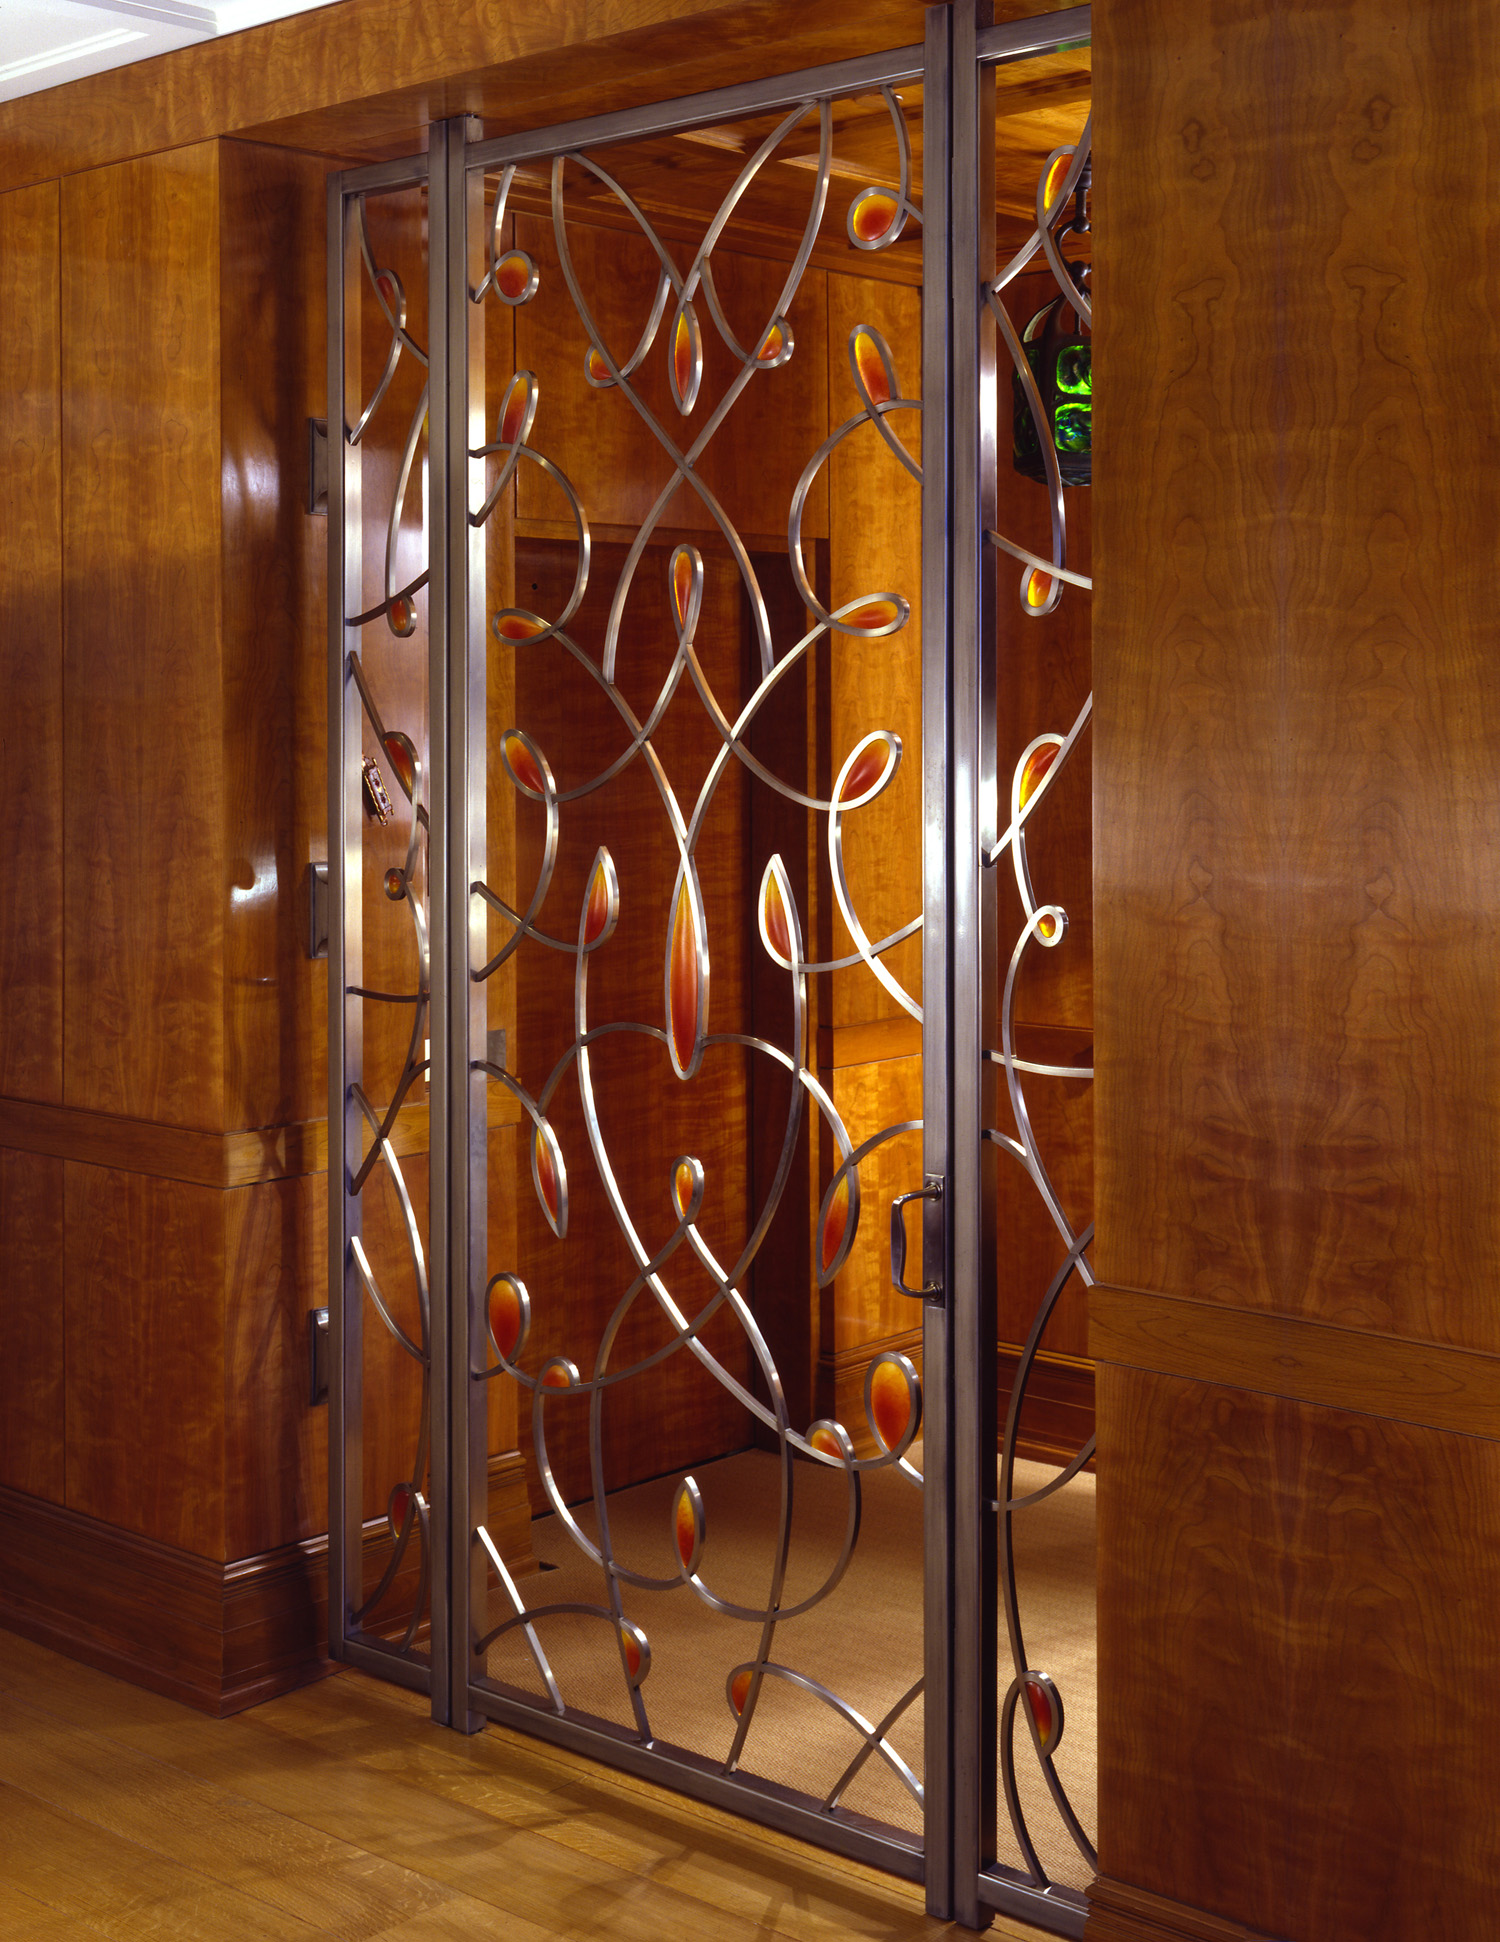 """Fall    2002. Steel, nickel-plated bronze, pate de verre. 108 x 72""""   Private residence, New York, NY"""